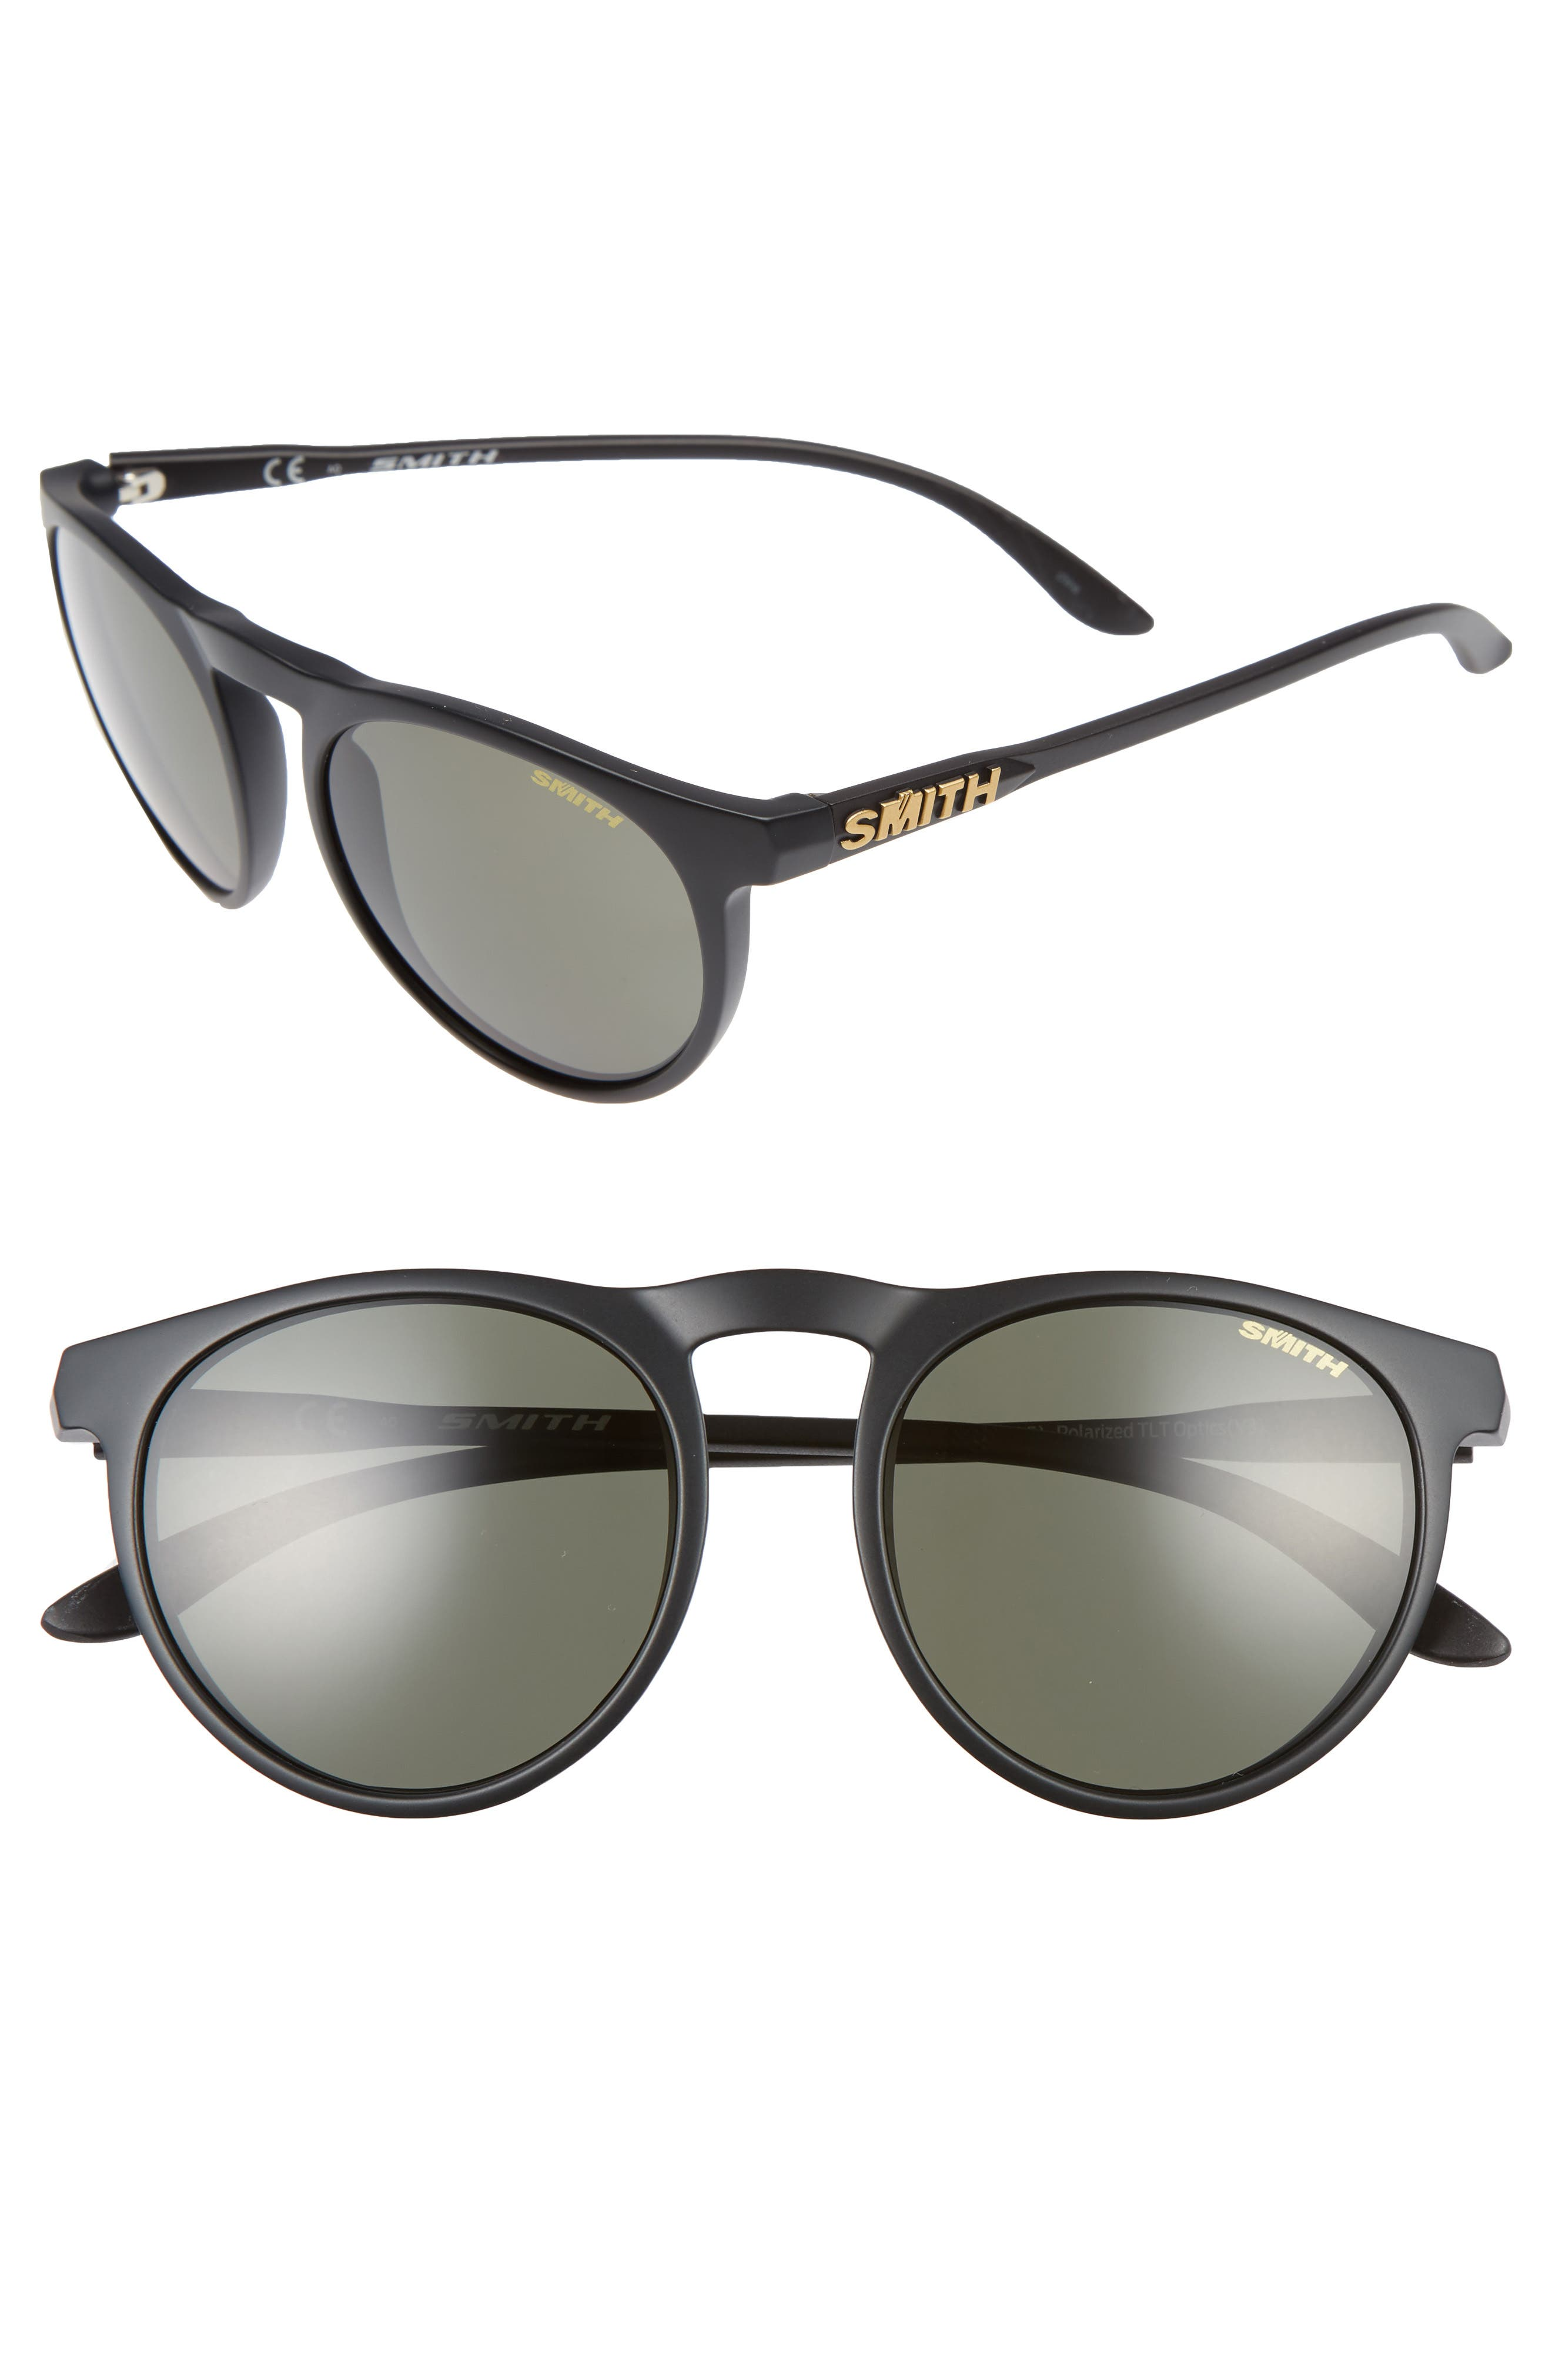 Main Image - Smith Marvine 52mm Polarized Round Sunglasses